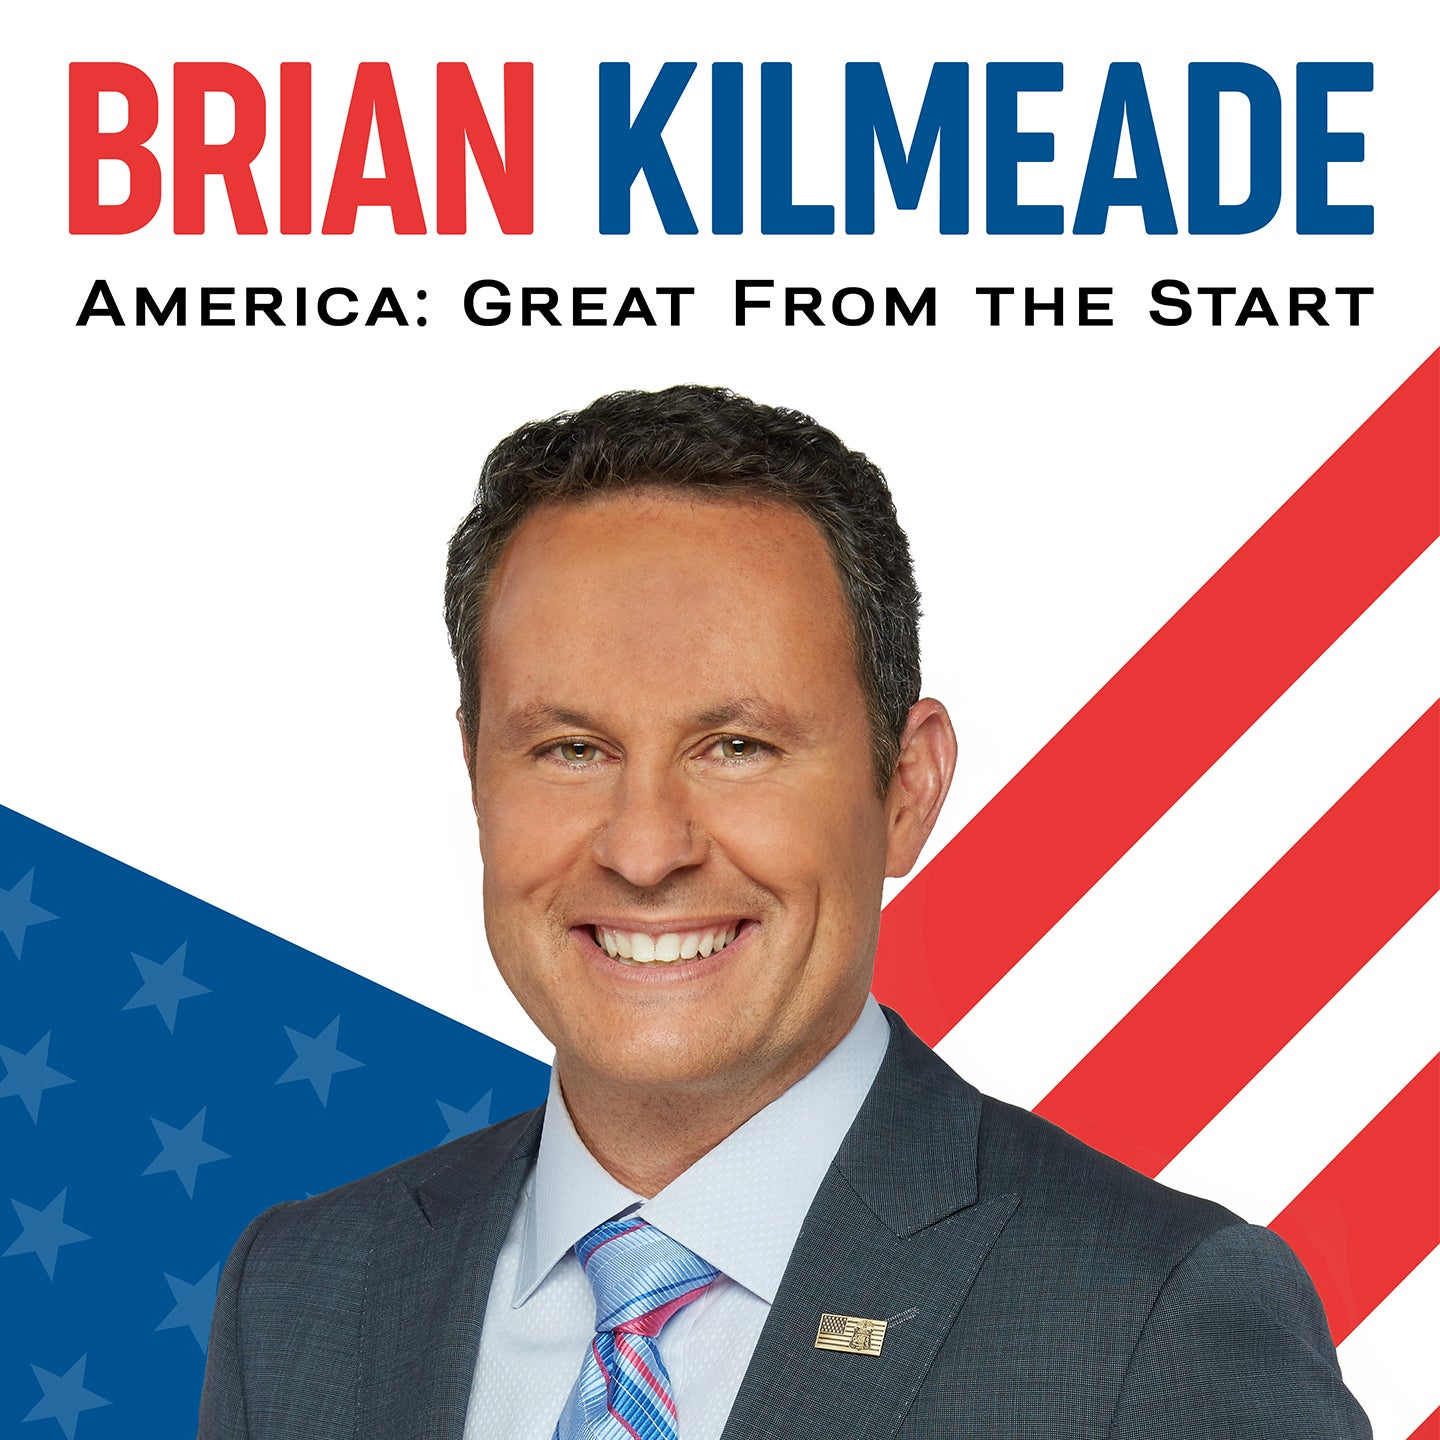 Brian Kilmeade: America: Great From The Start